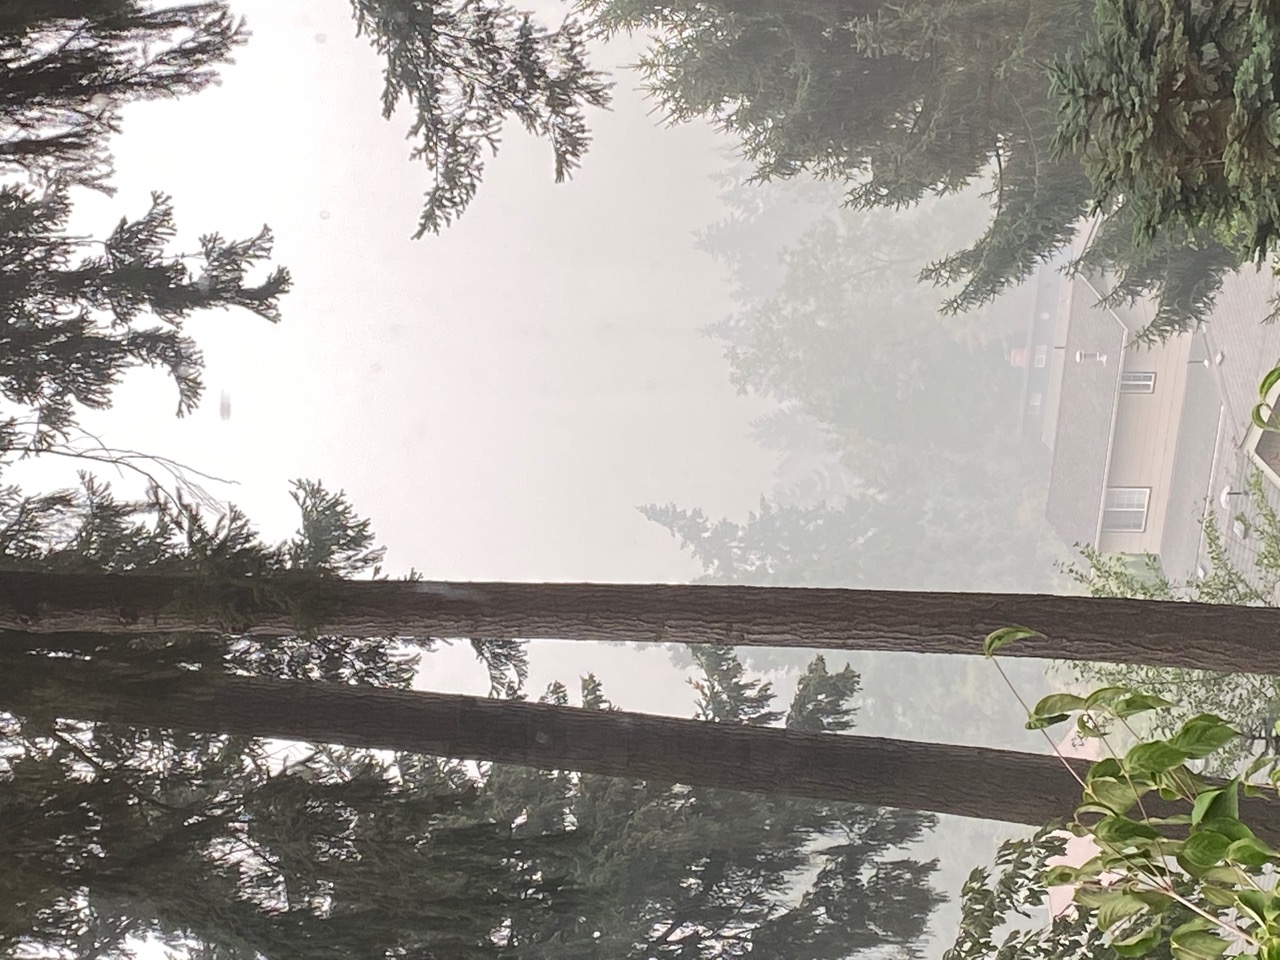 View from Oregon Usher 1F researcher Jennifer Phillips' window during the fires